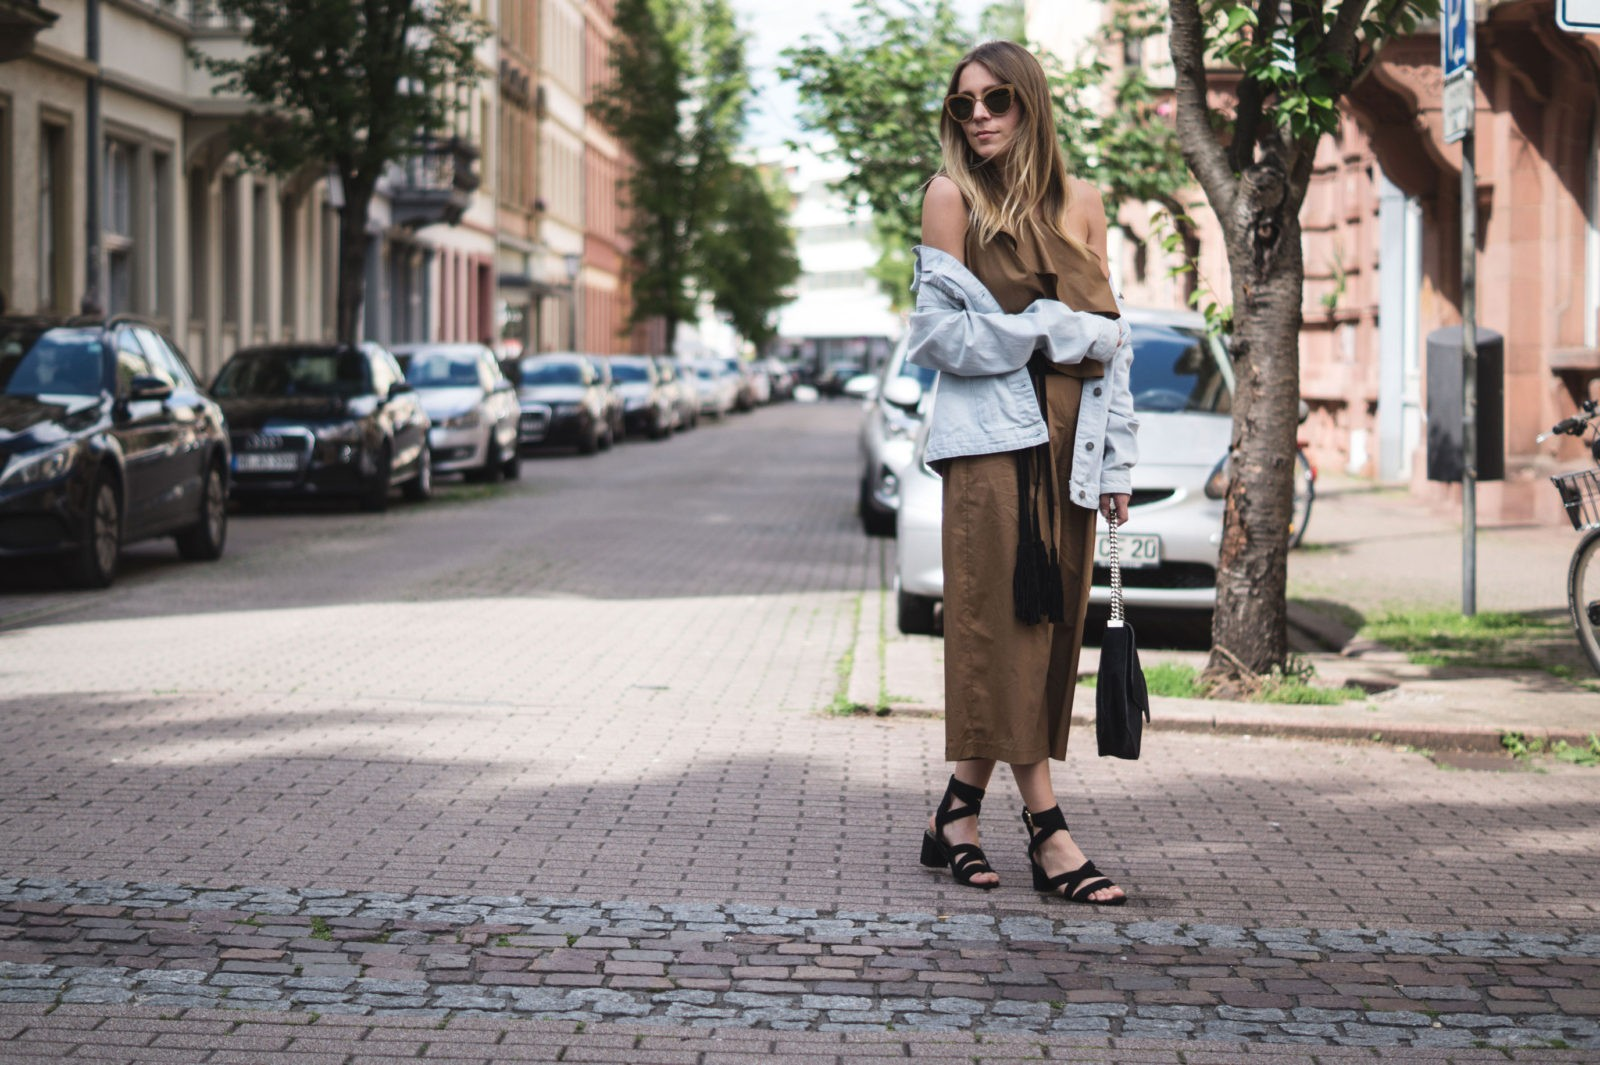 Sariety Modeblog Sarah Czok Fashionblogger Streetstyle Outfit Jumpsuit Obersize Denim Jeansjacke-3